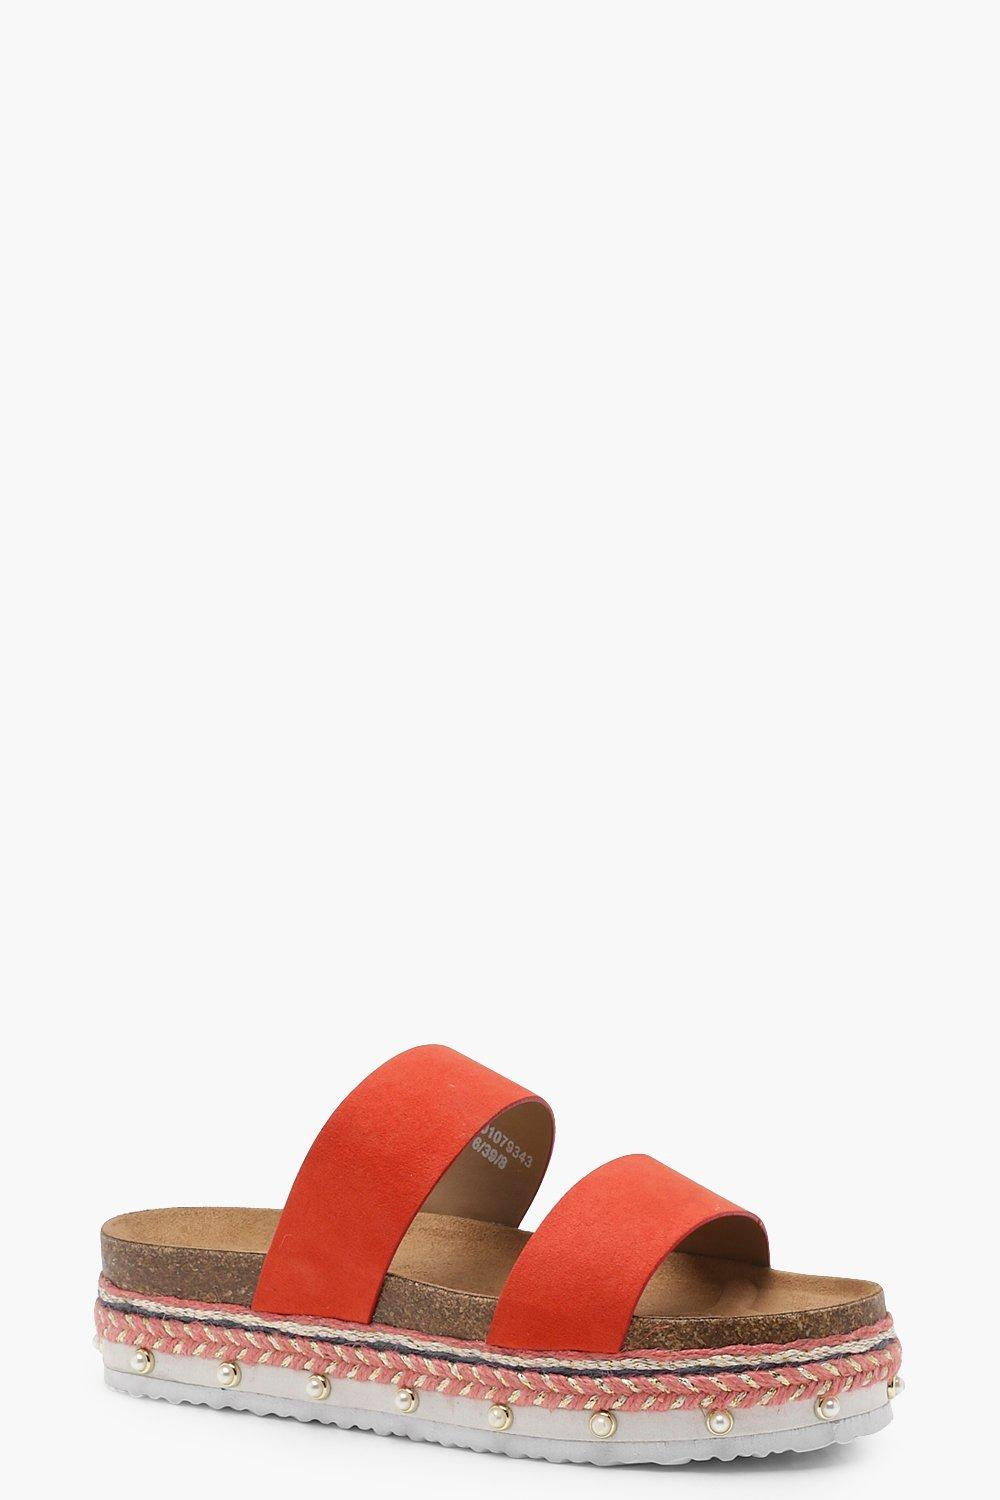 5d3b4f76e Layered Espadrille Double Band Sliders